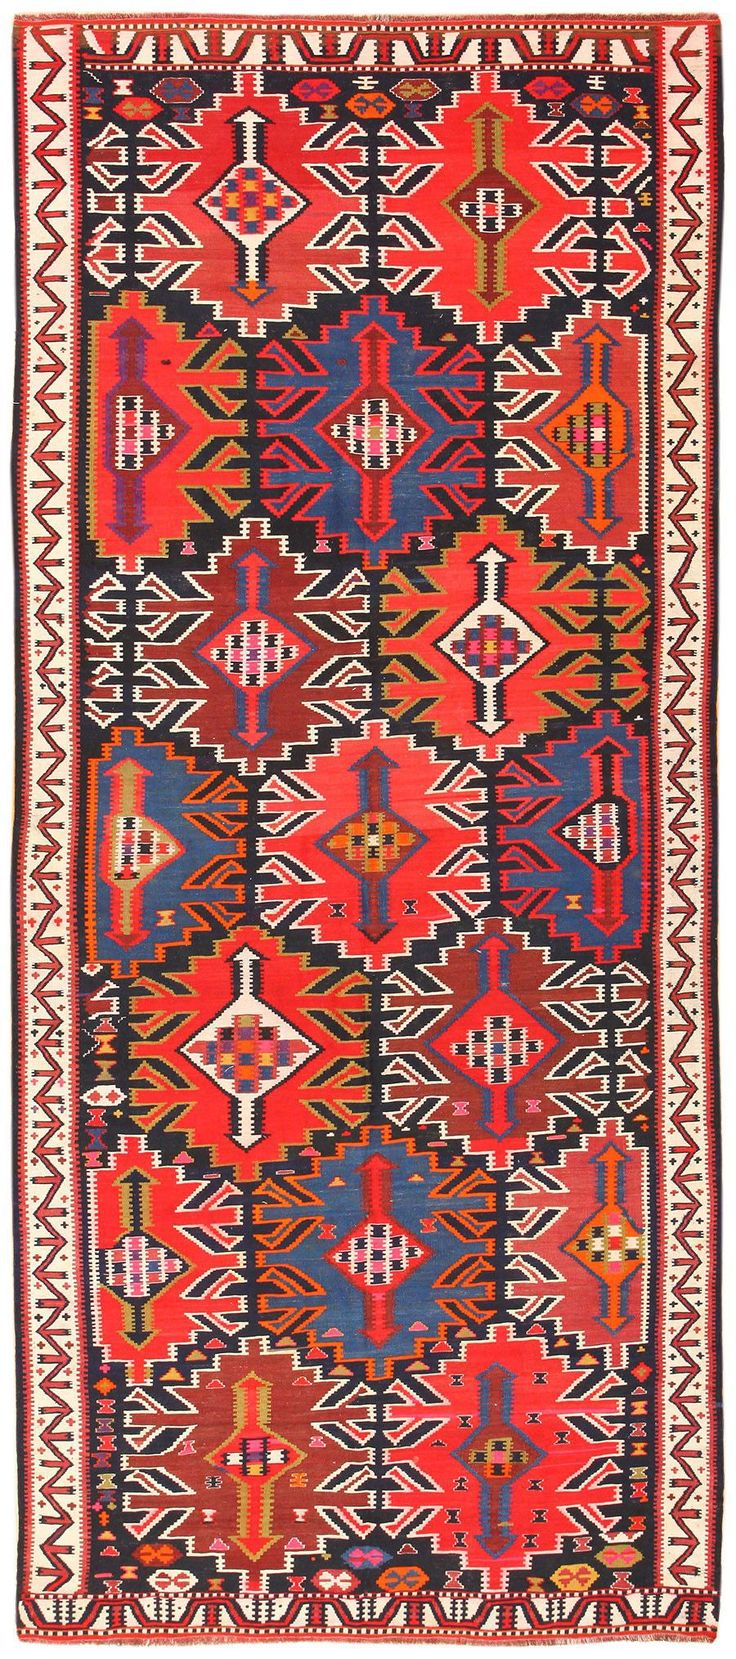 4384 best for the love of rugs images on pinterest oriental rug oriental rugs and prayer rug. Black Bedroom Furniture Sets. Home Design Ideas